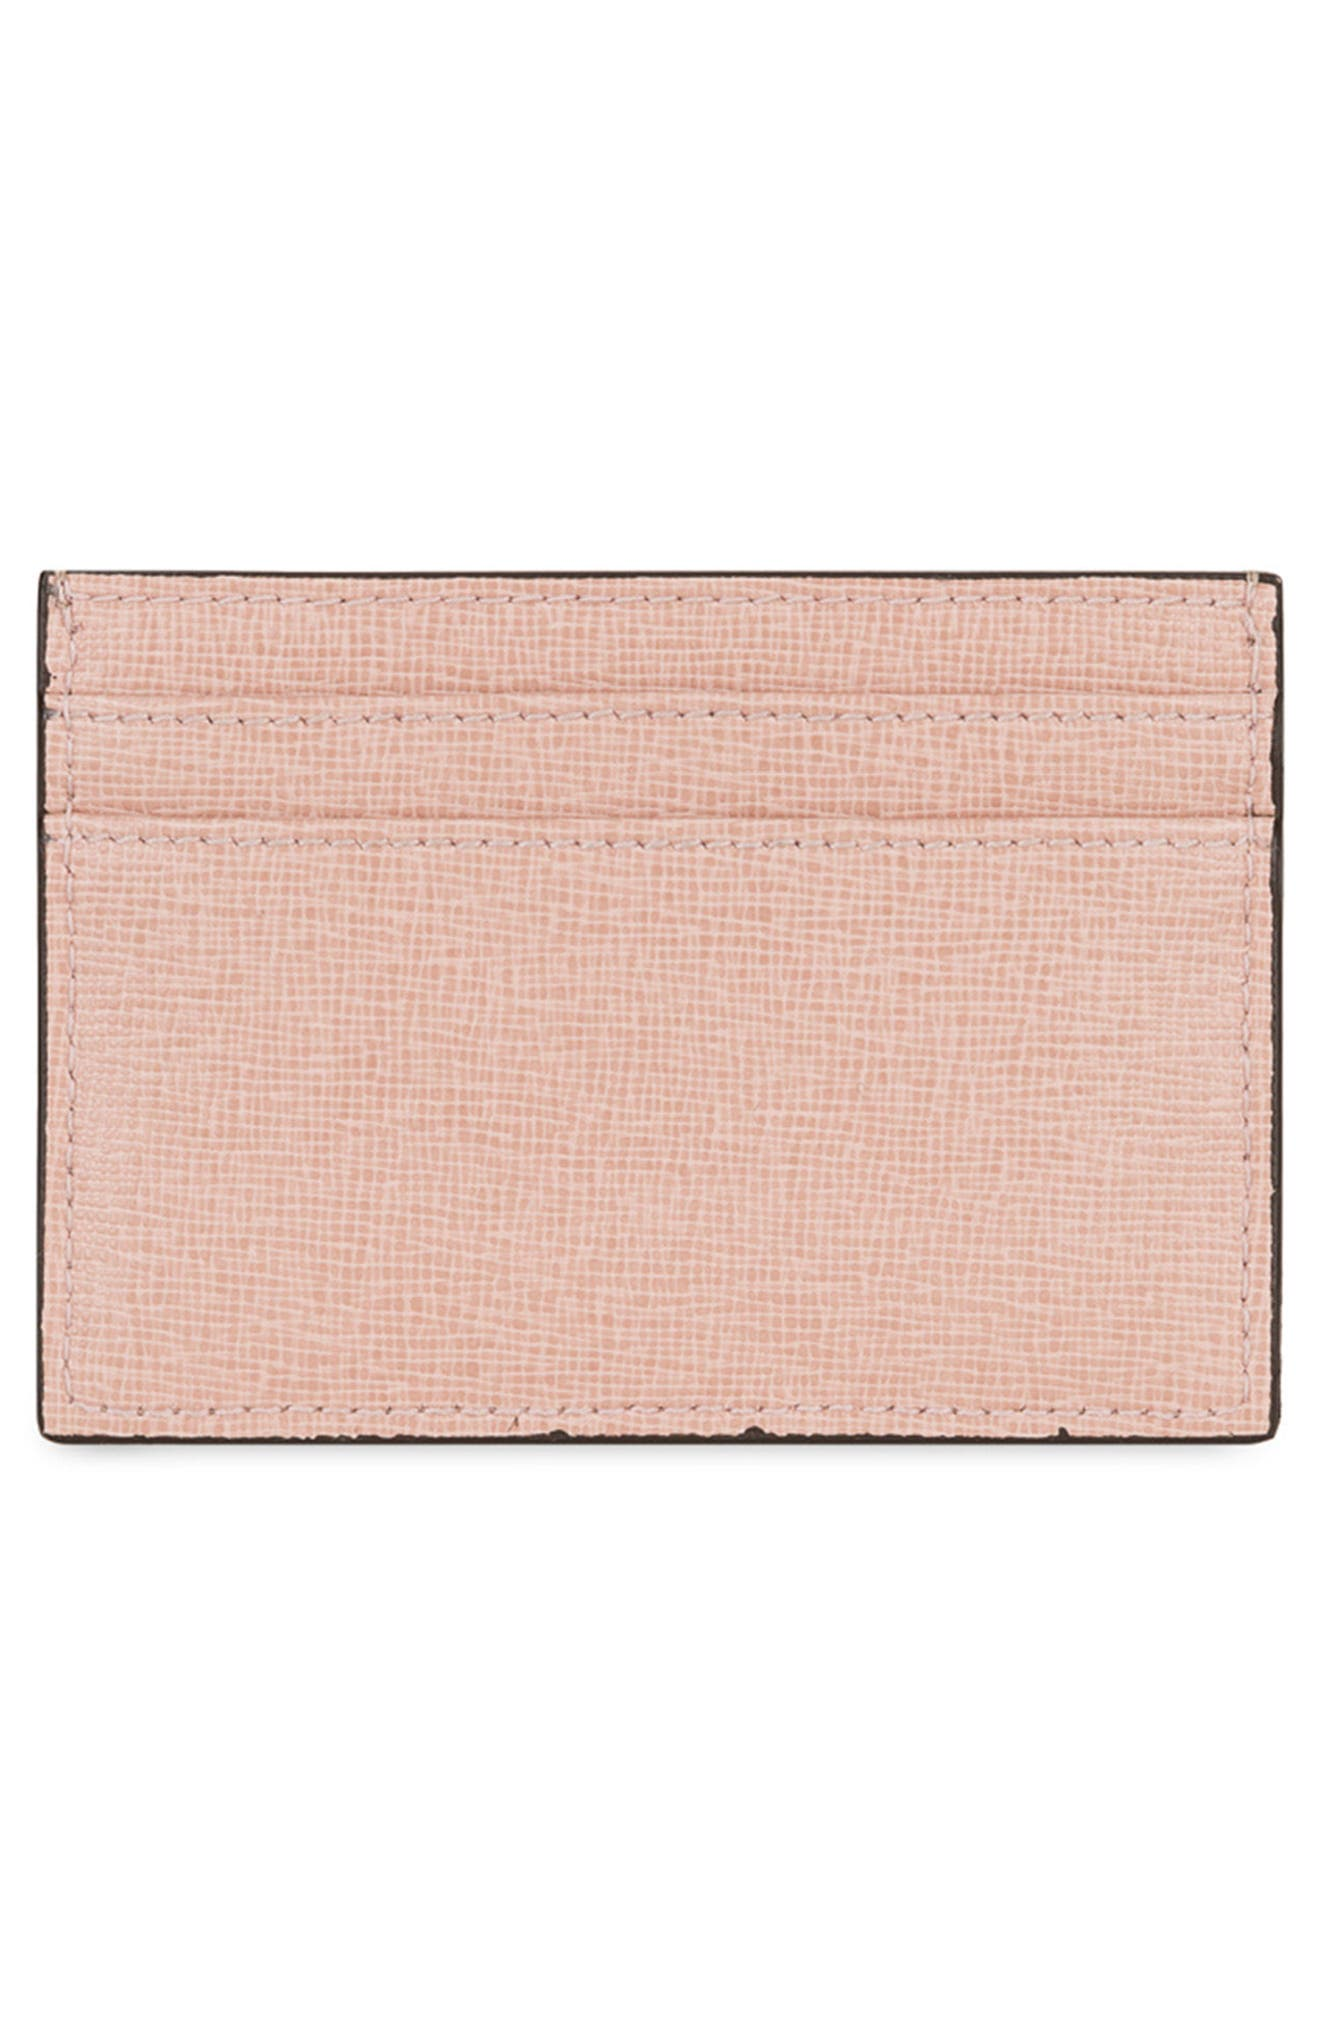 Babylon Saffiano Leather Card Case,                             Alternate thumbnail 2, color,                             250